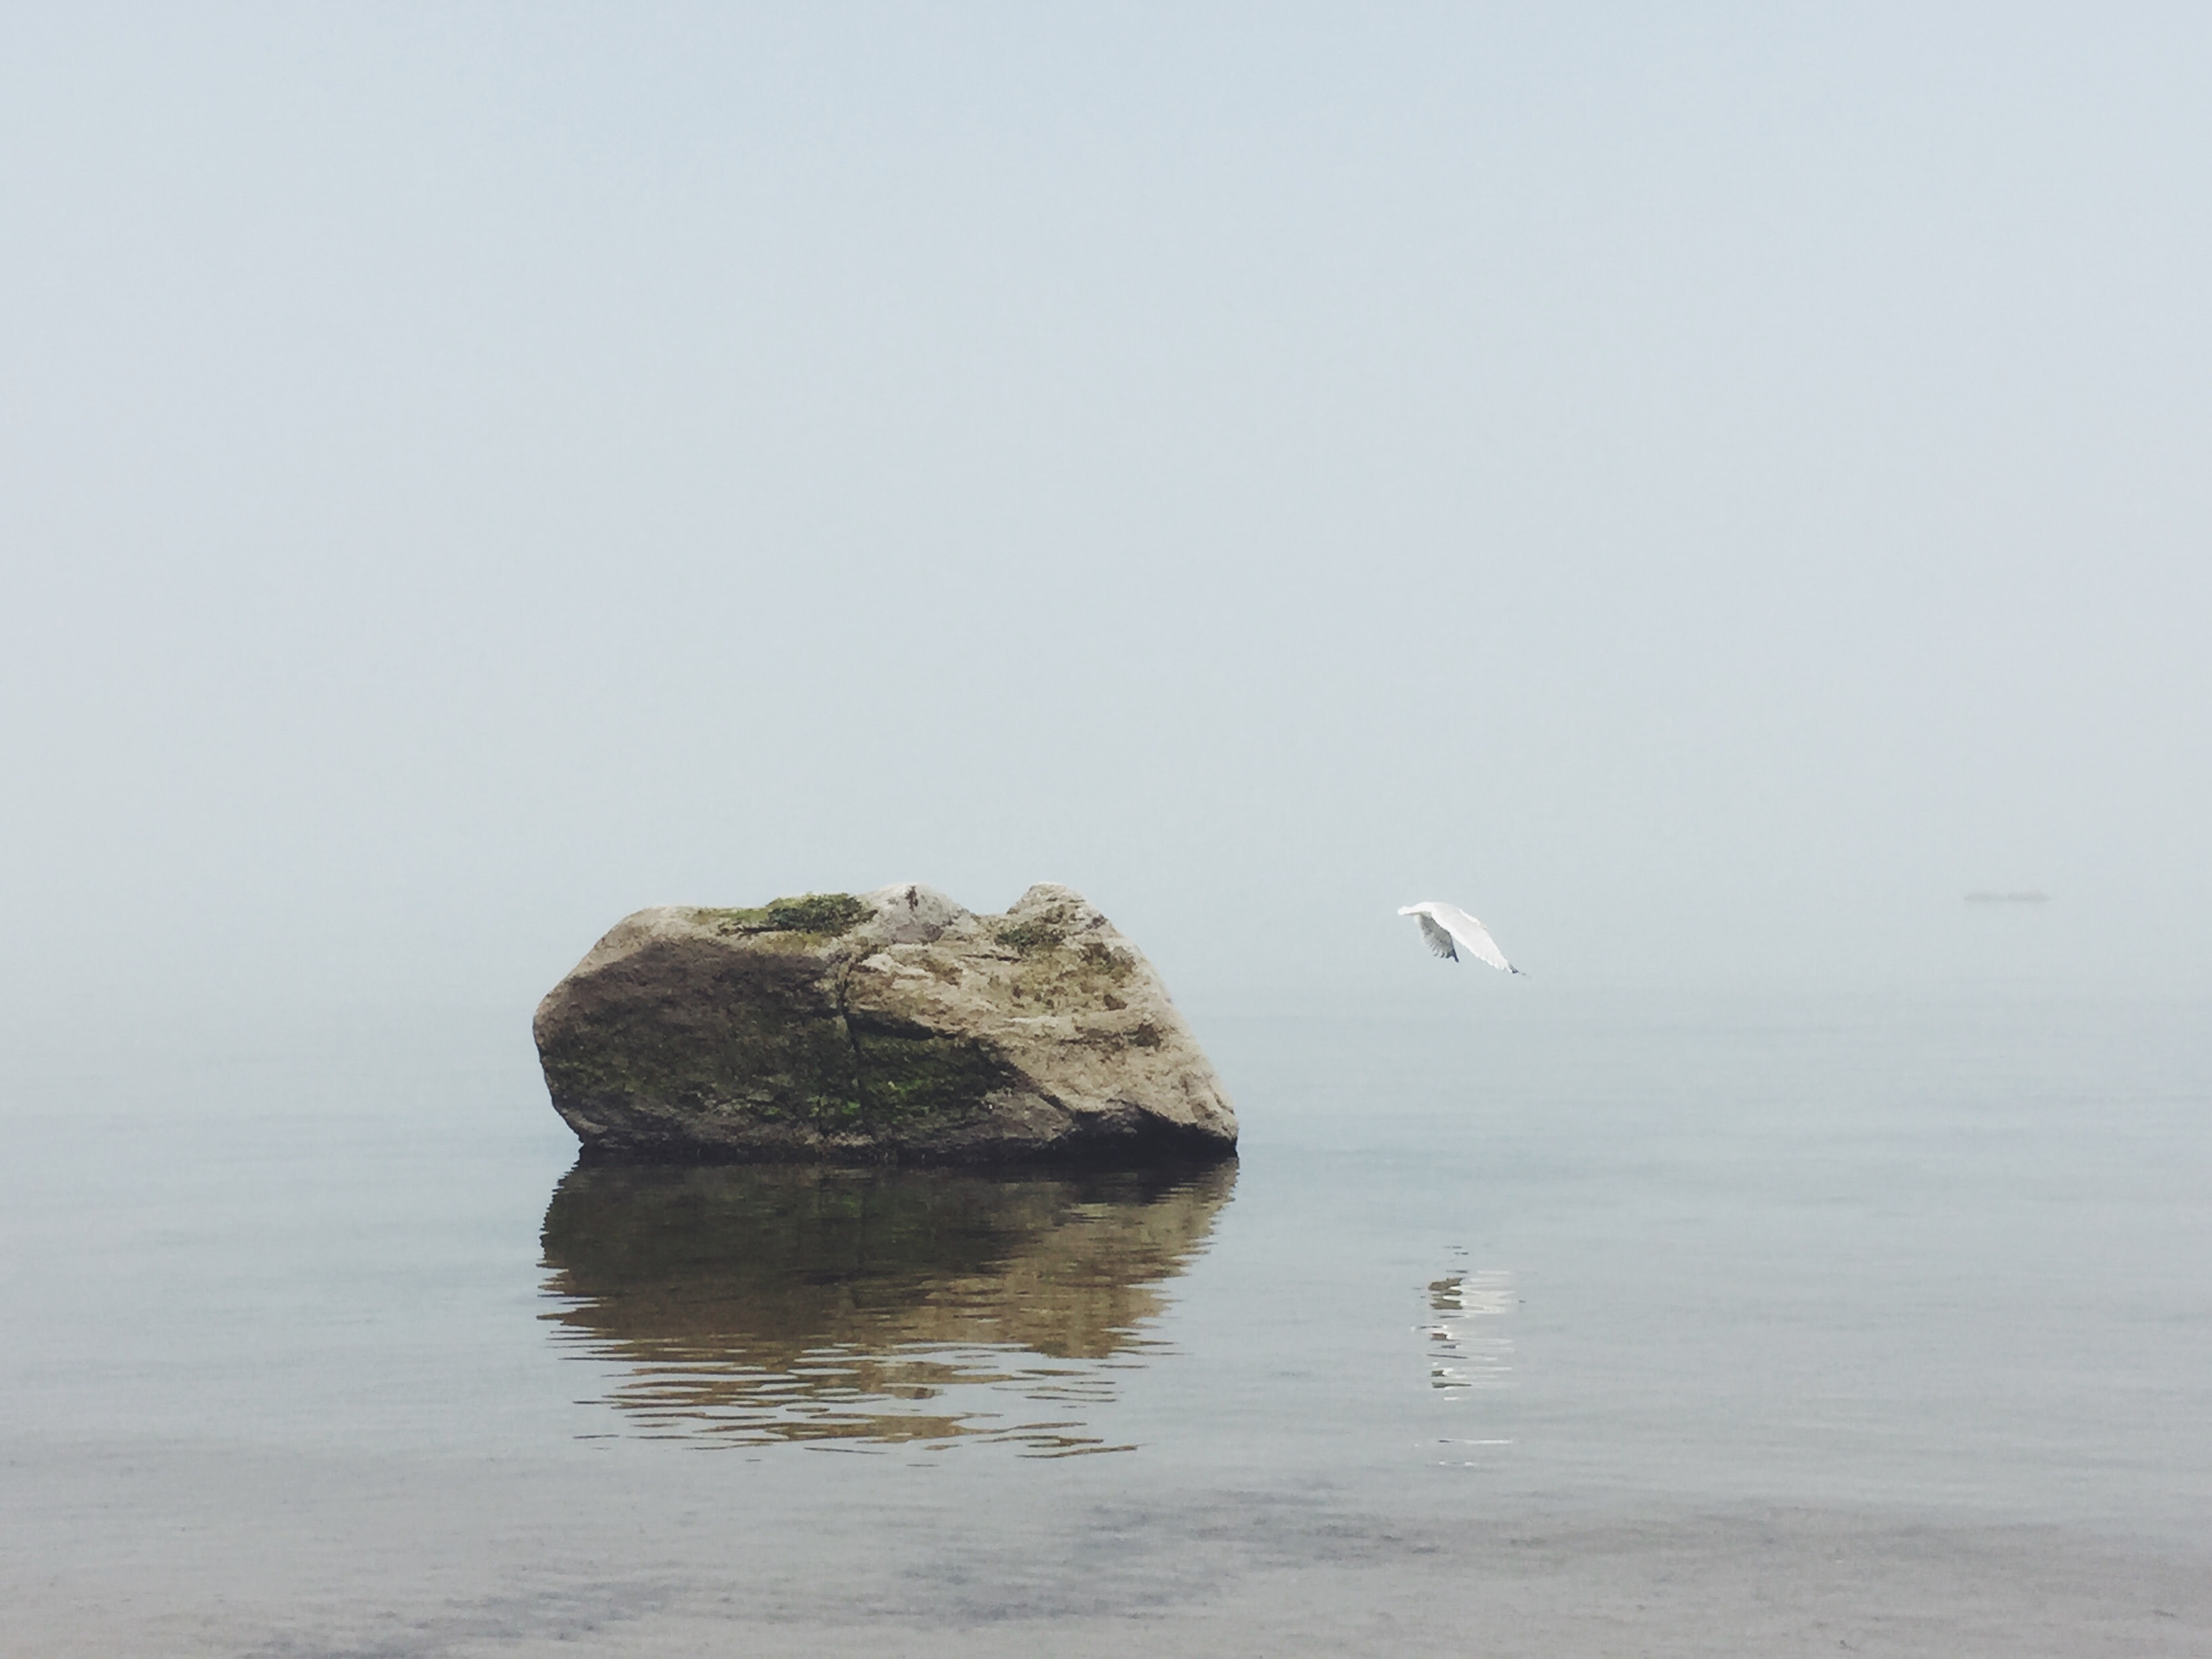 white bird fly beside rock and body of water